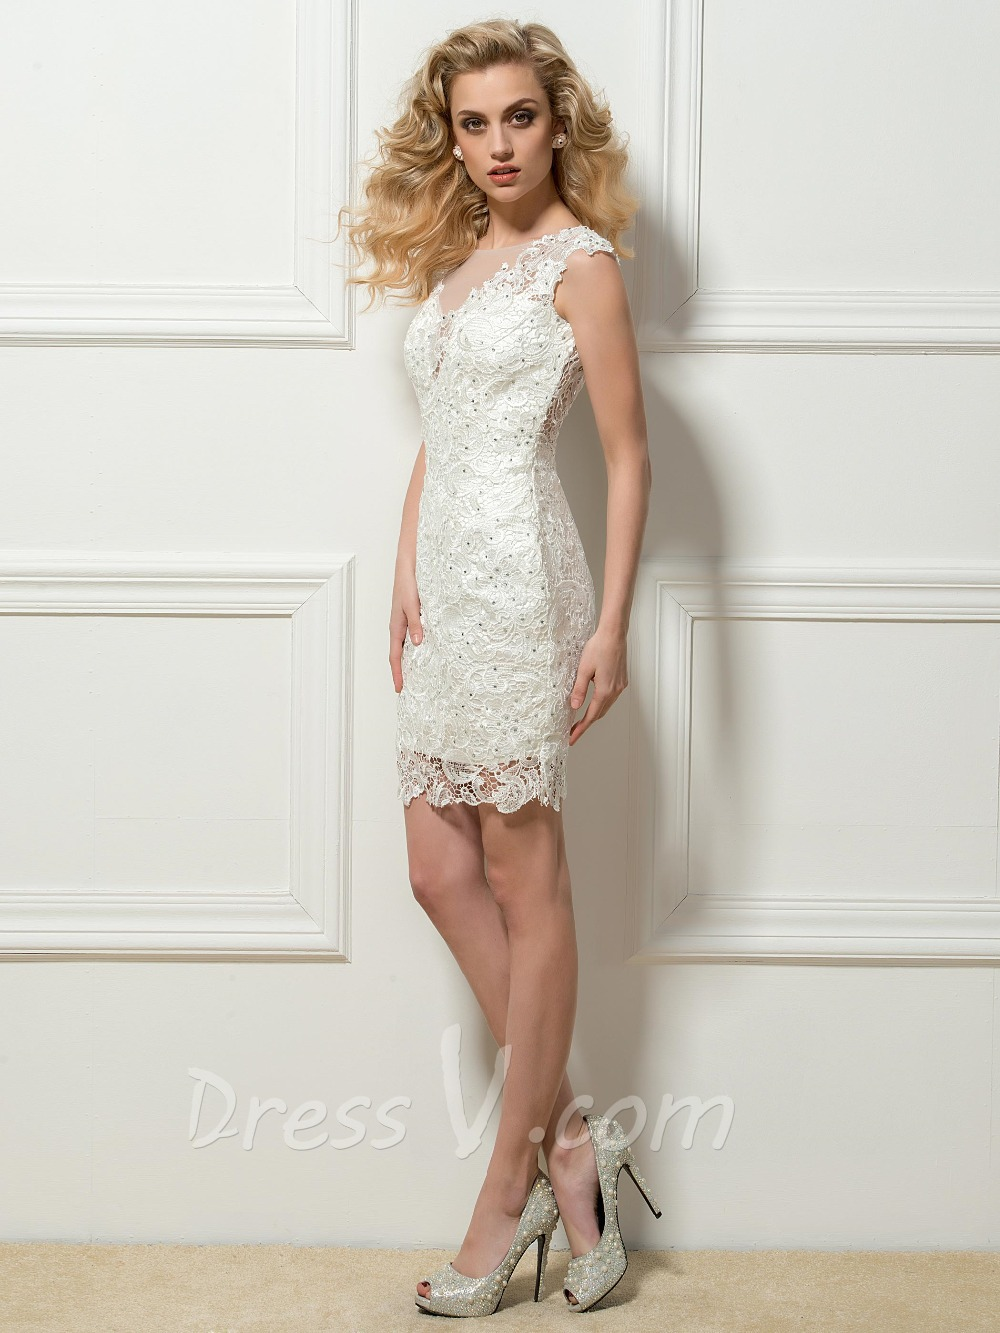 Cheap Wedding Dresses Columbus Ohio - Ocodea.com